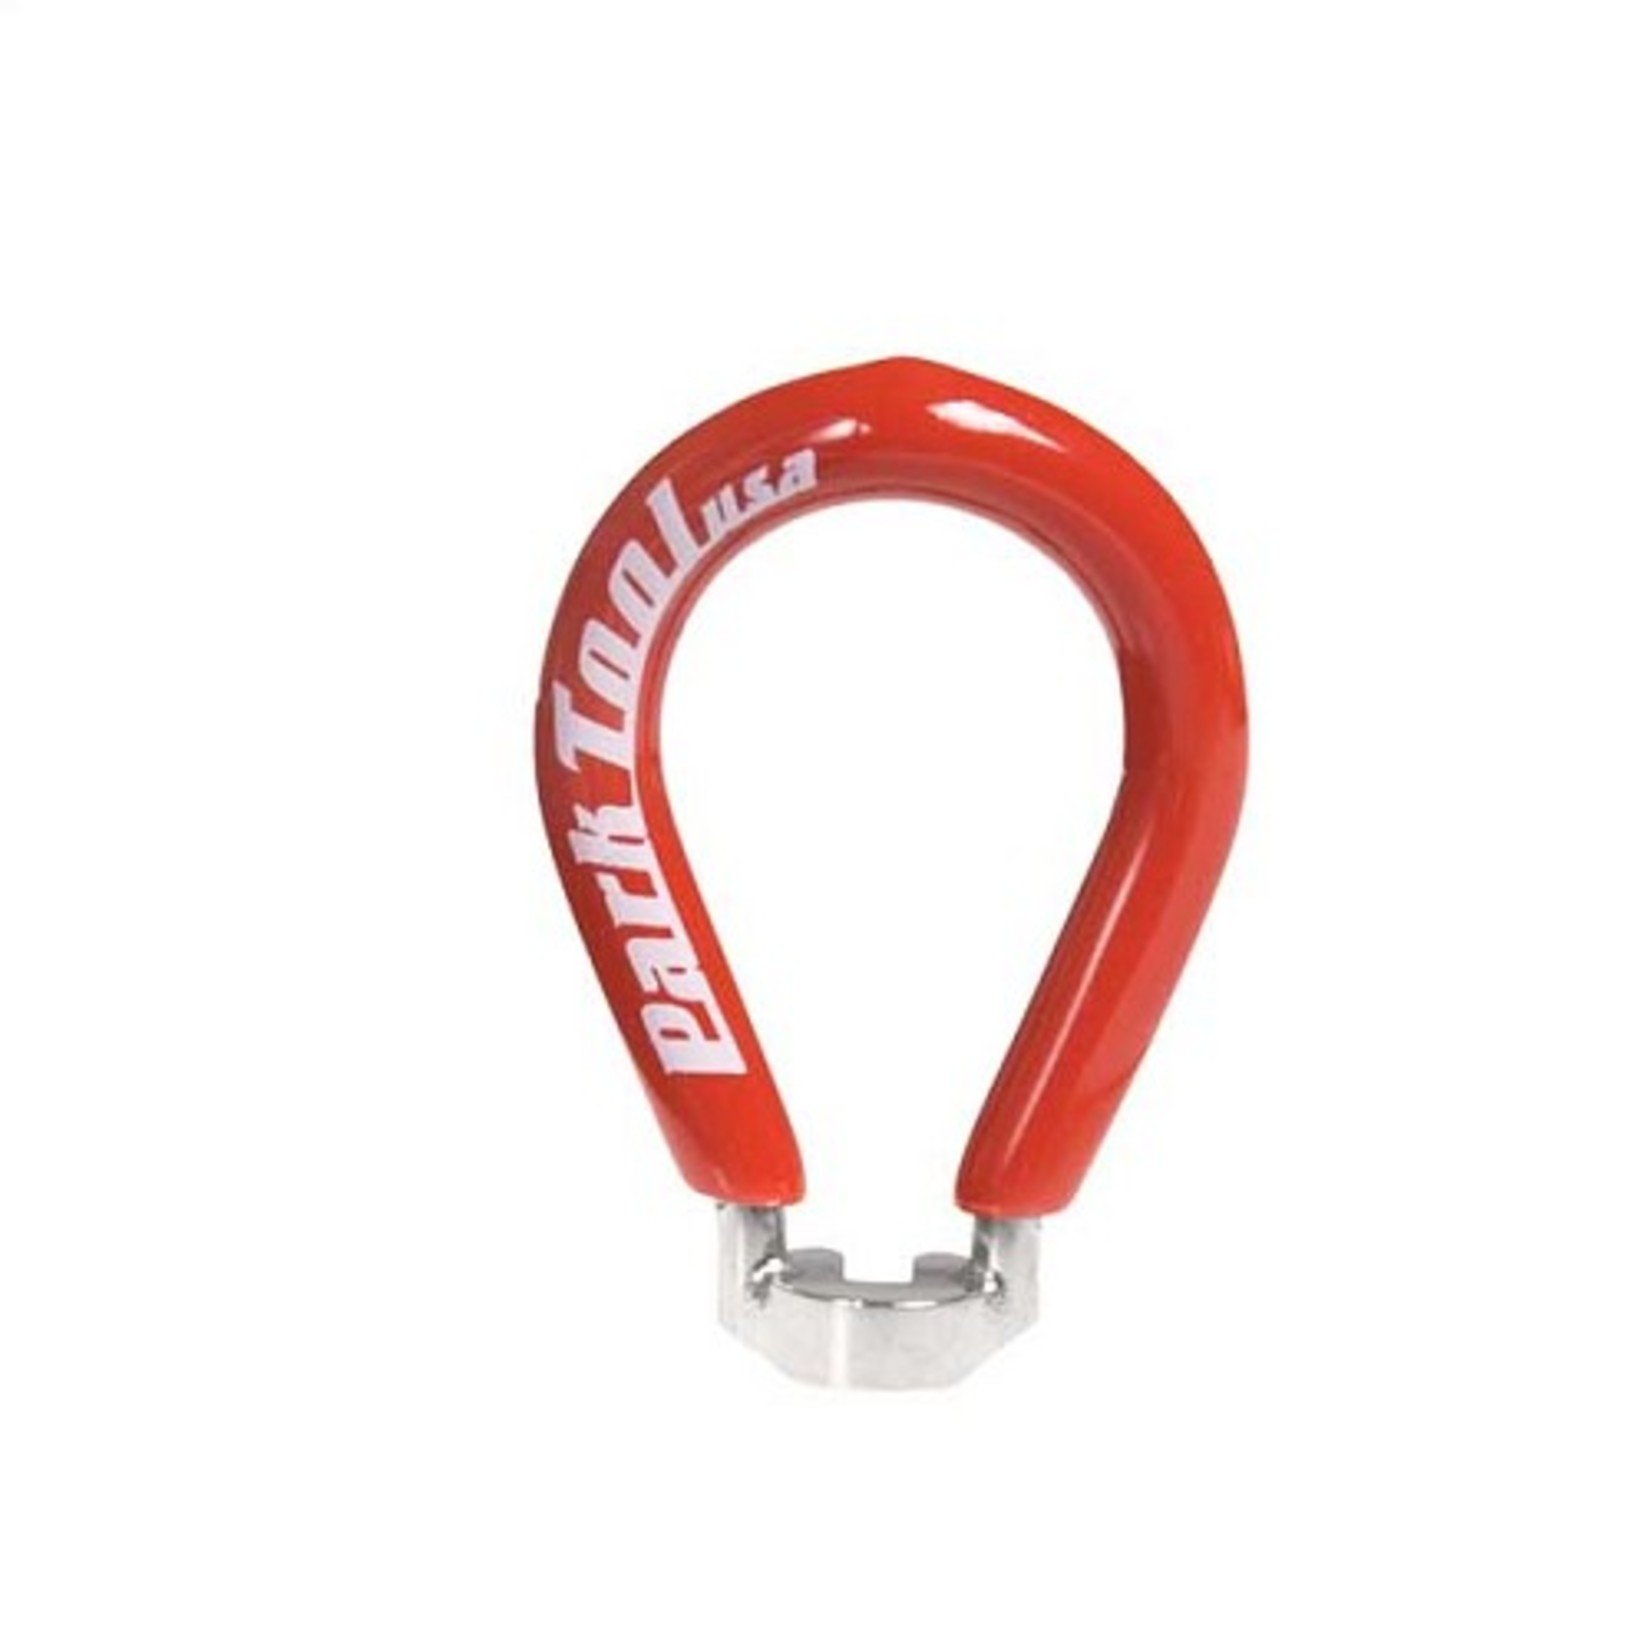 Park Tool Park Tool SW-2 Spoke Wrench Red